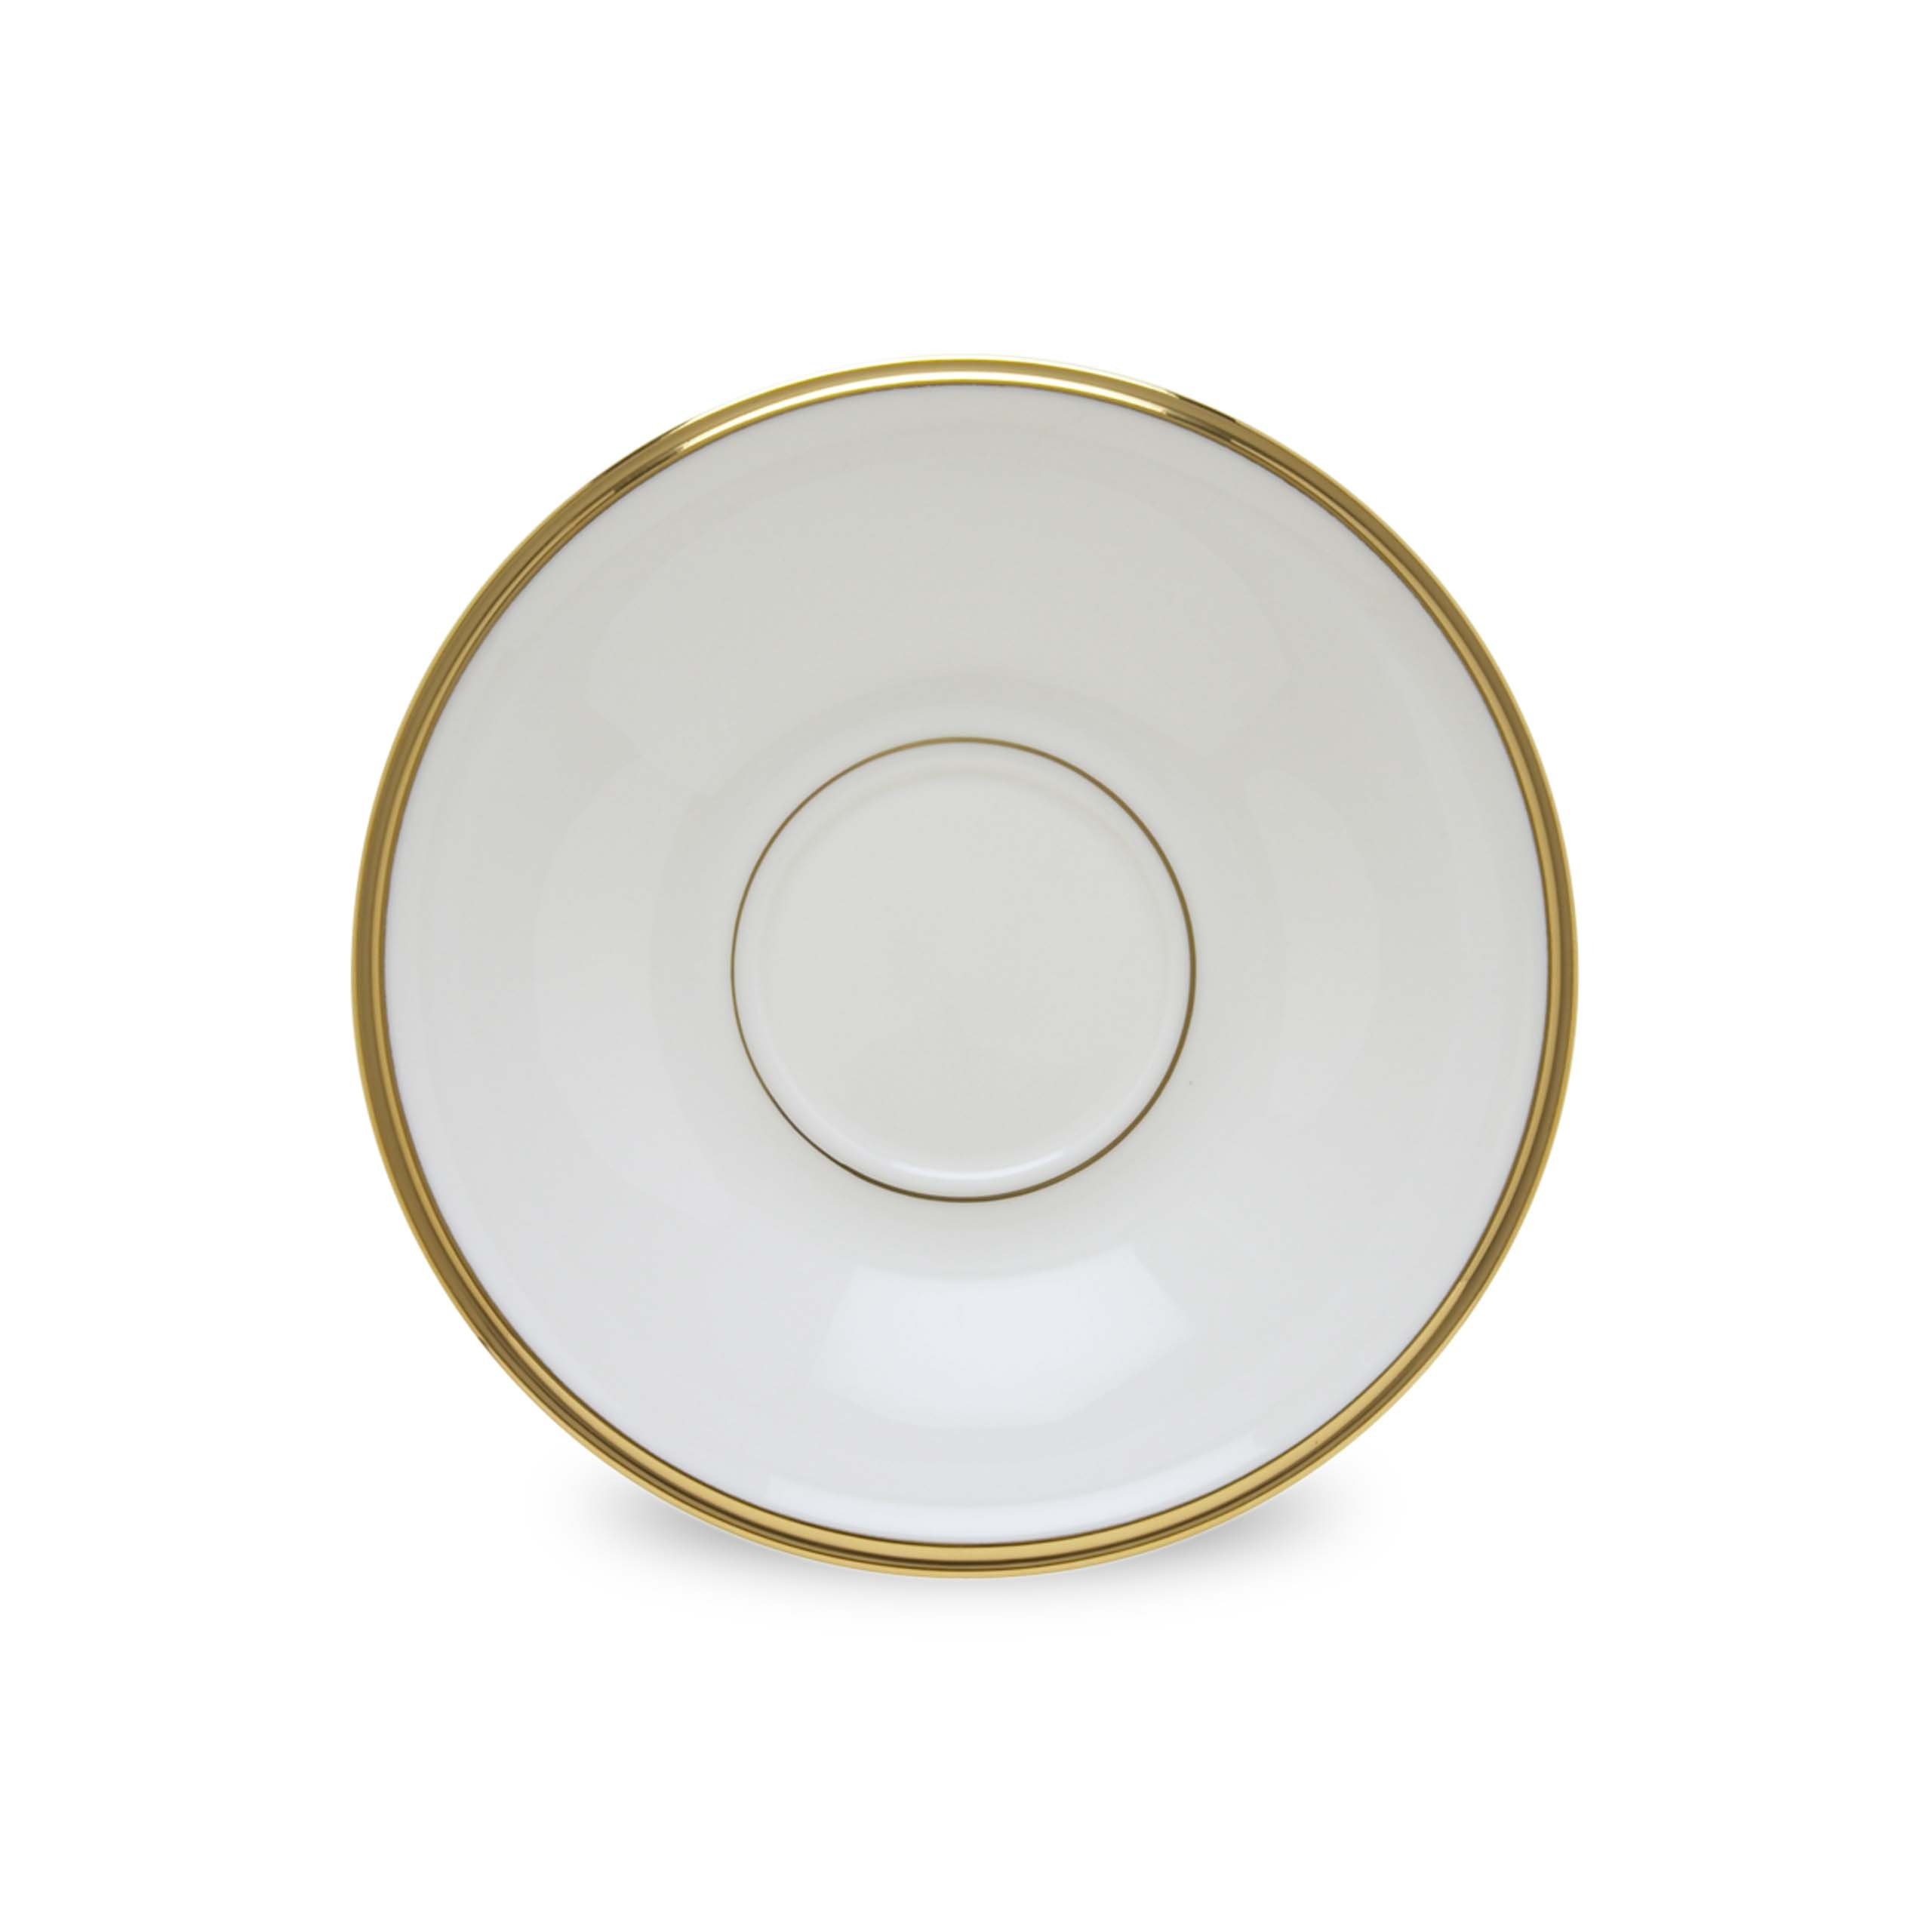 Lenox Eternal White Gold Banded Bone China Saucer